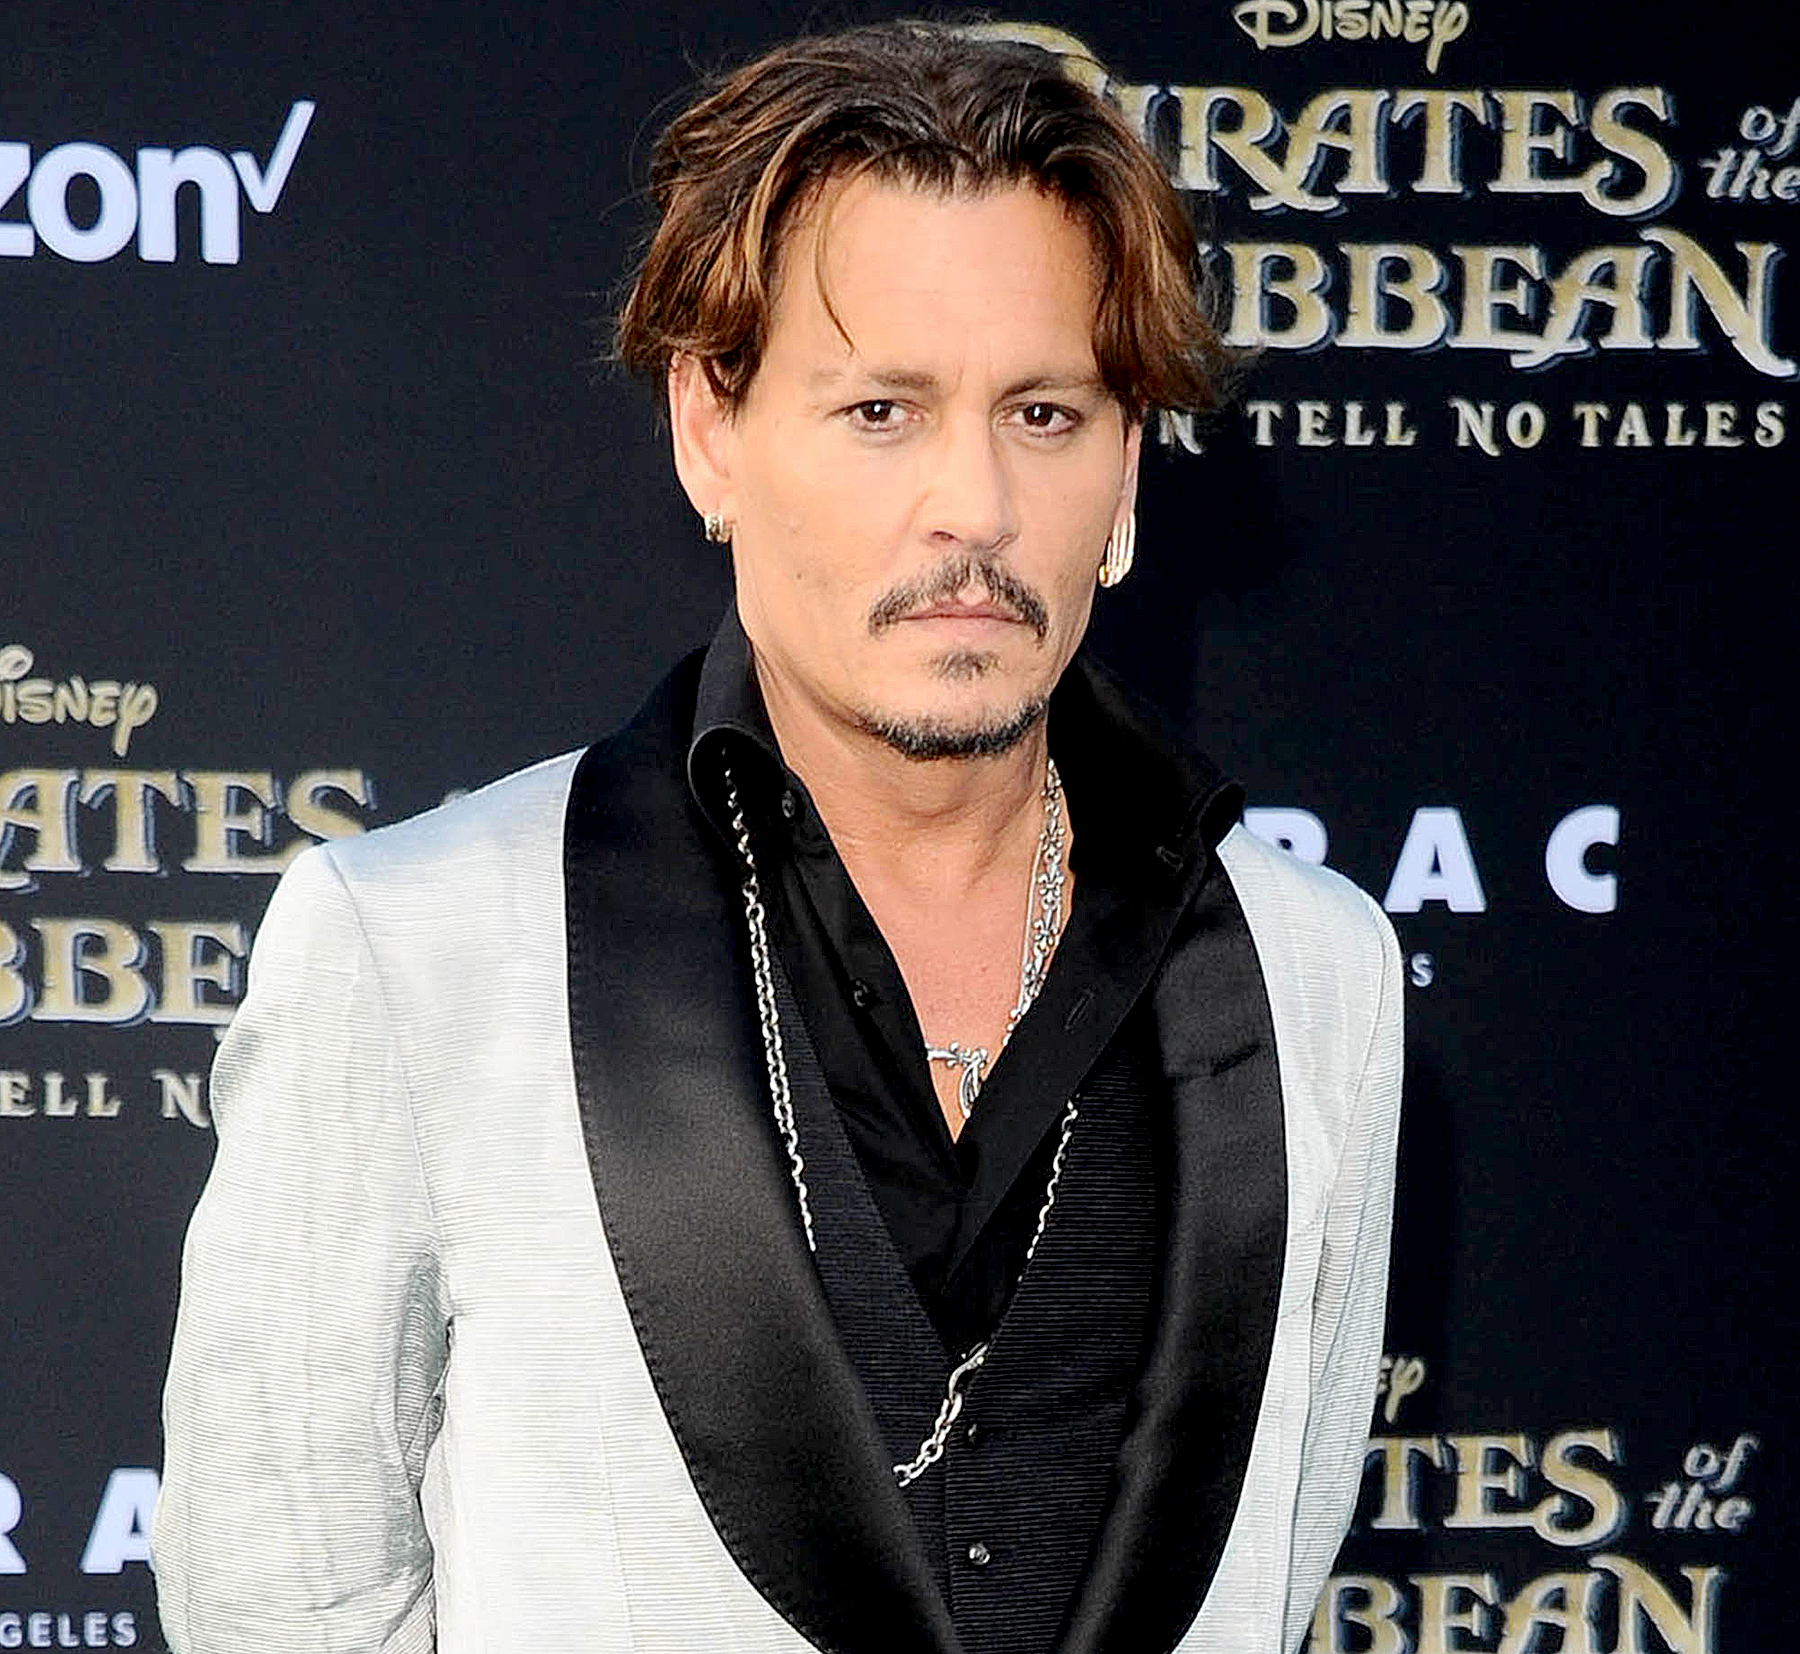 Johnny Depp Sued for Assault on Movie Set